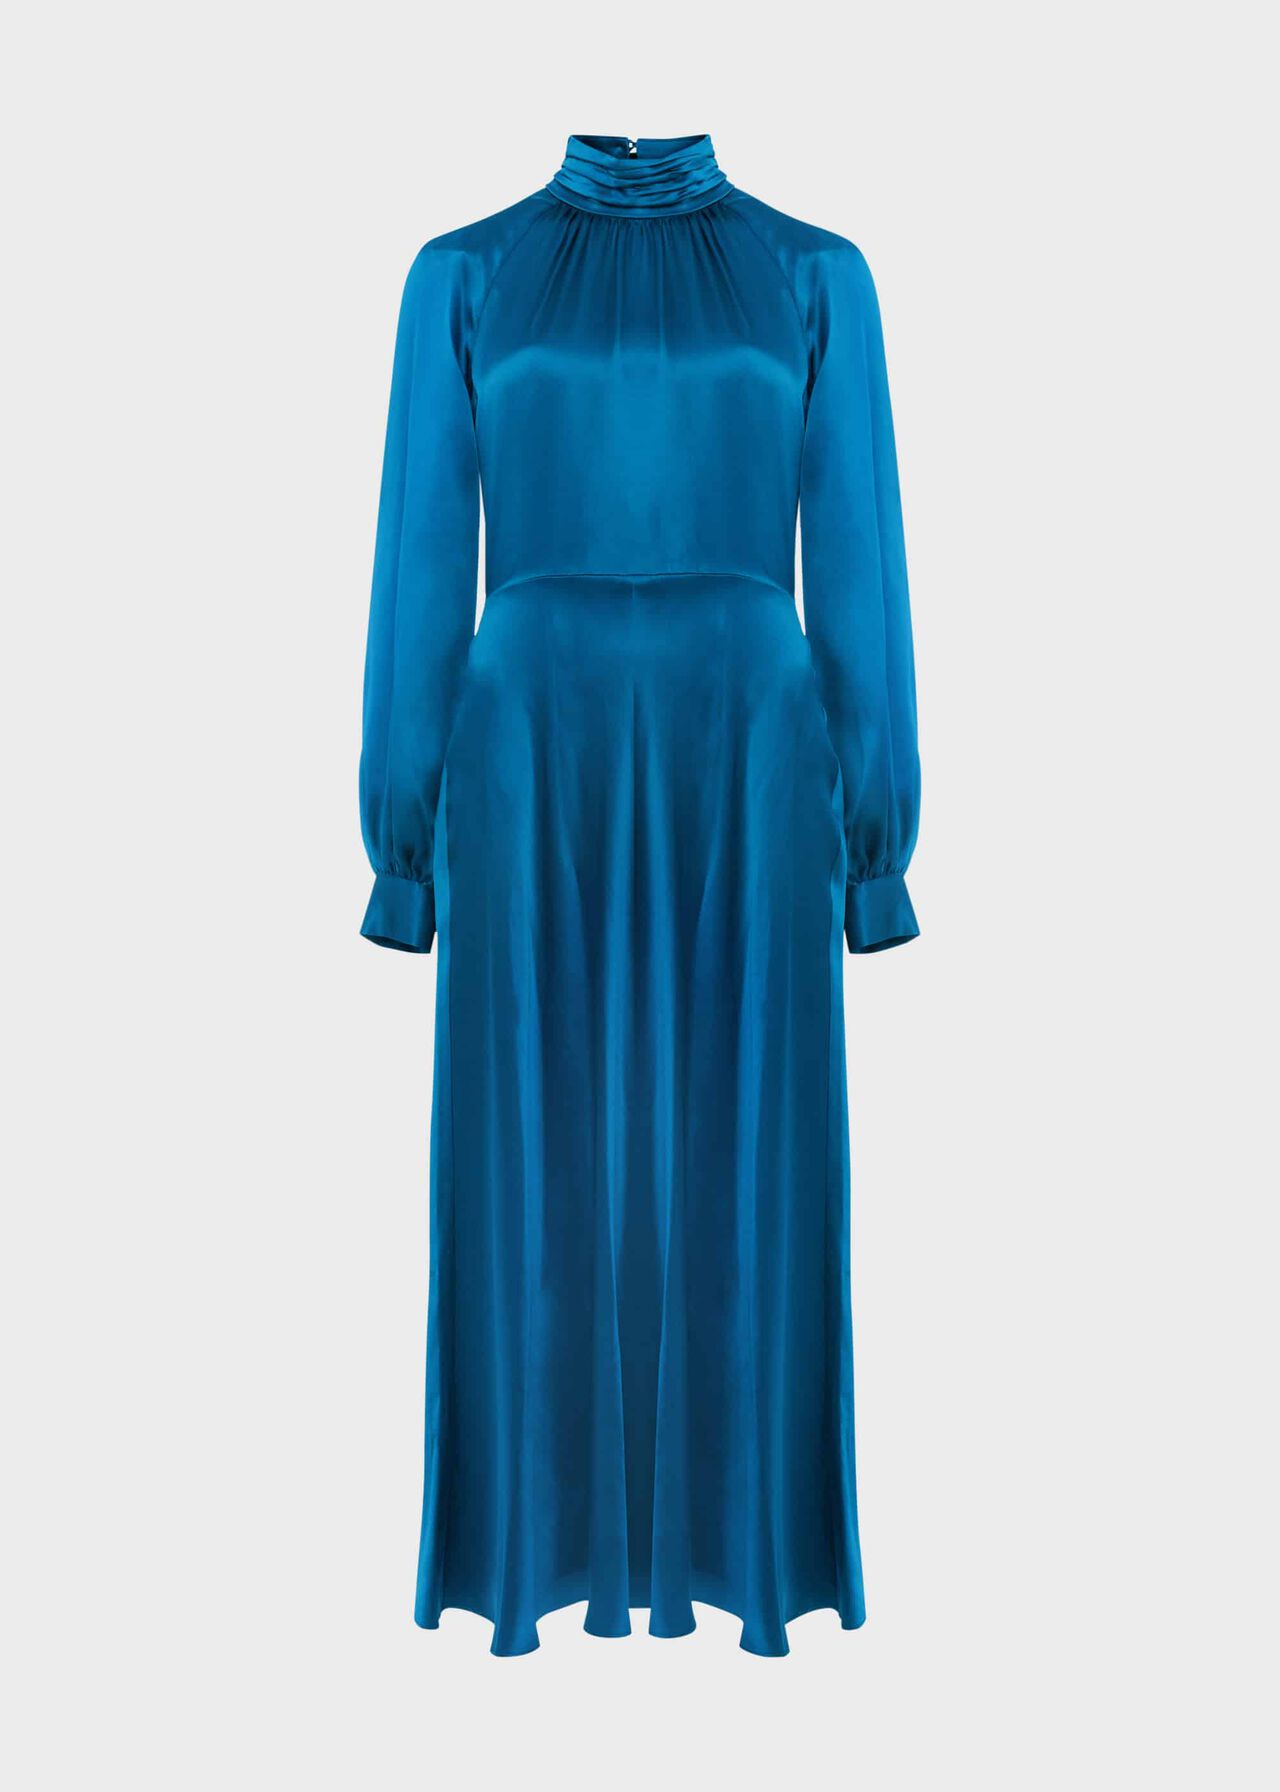 Haisley Silk Dress Kingfisher Blue